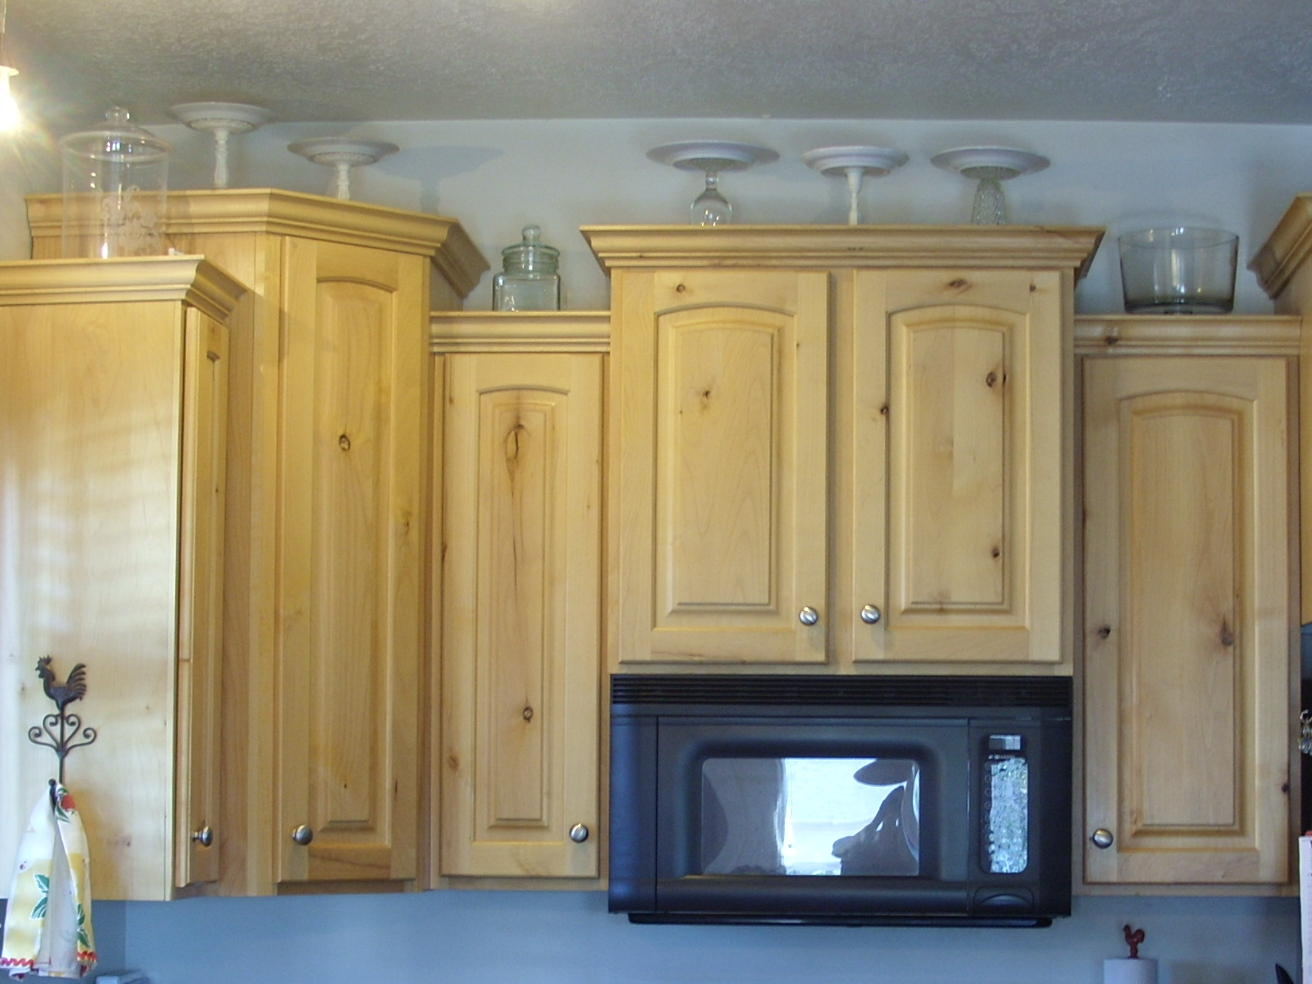 Decorating the Top of the Kitchen Cabinets - Organize and Decorate ...